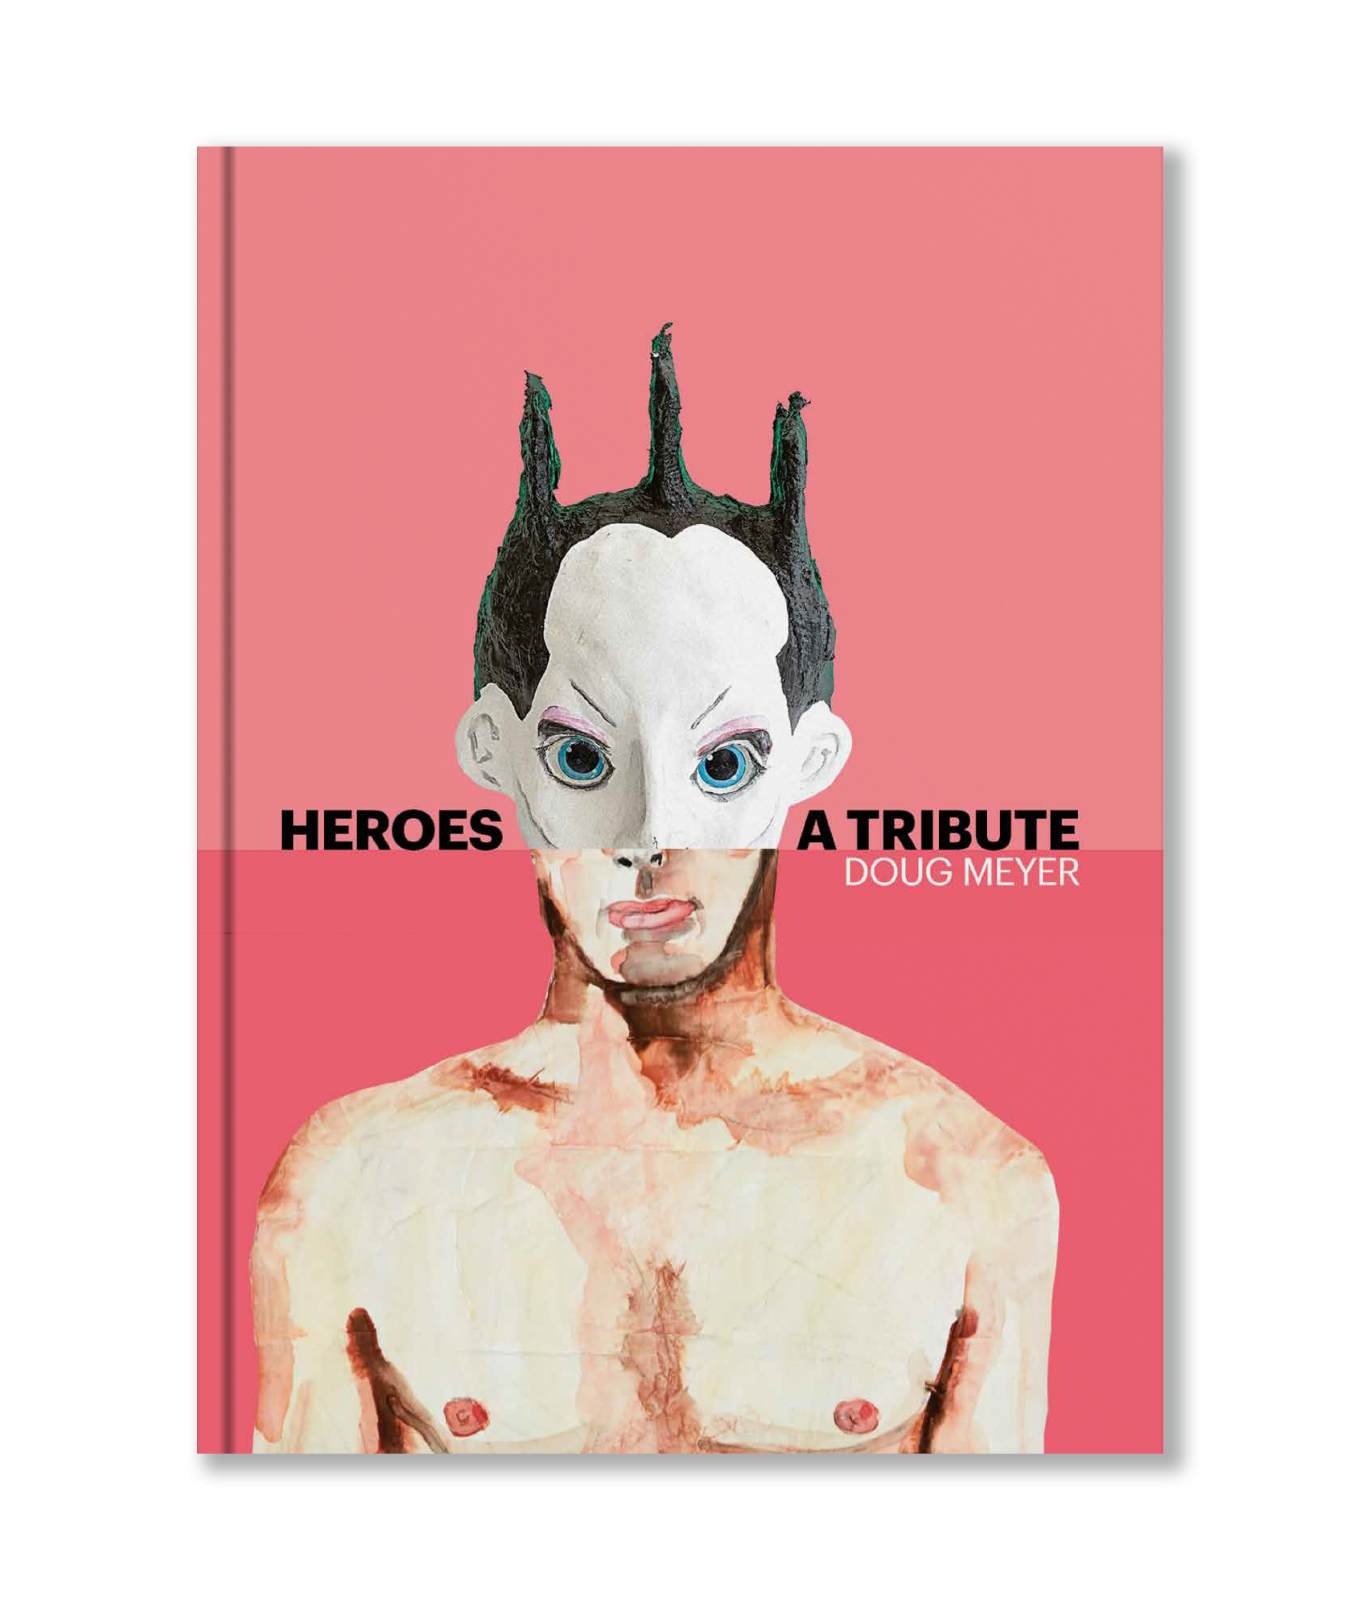 Heroes: A Tribute - Pink Art Edition